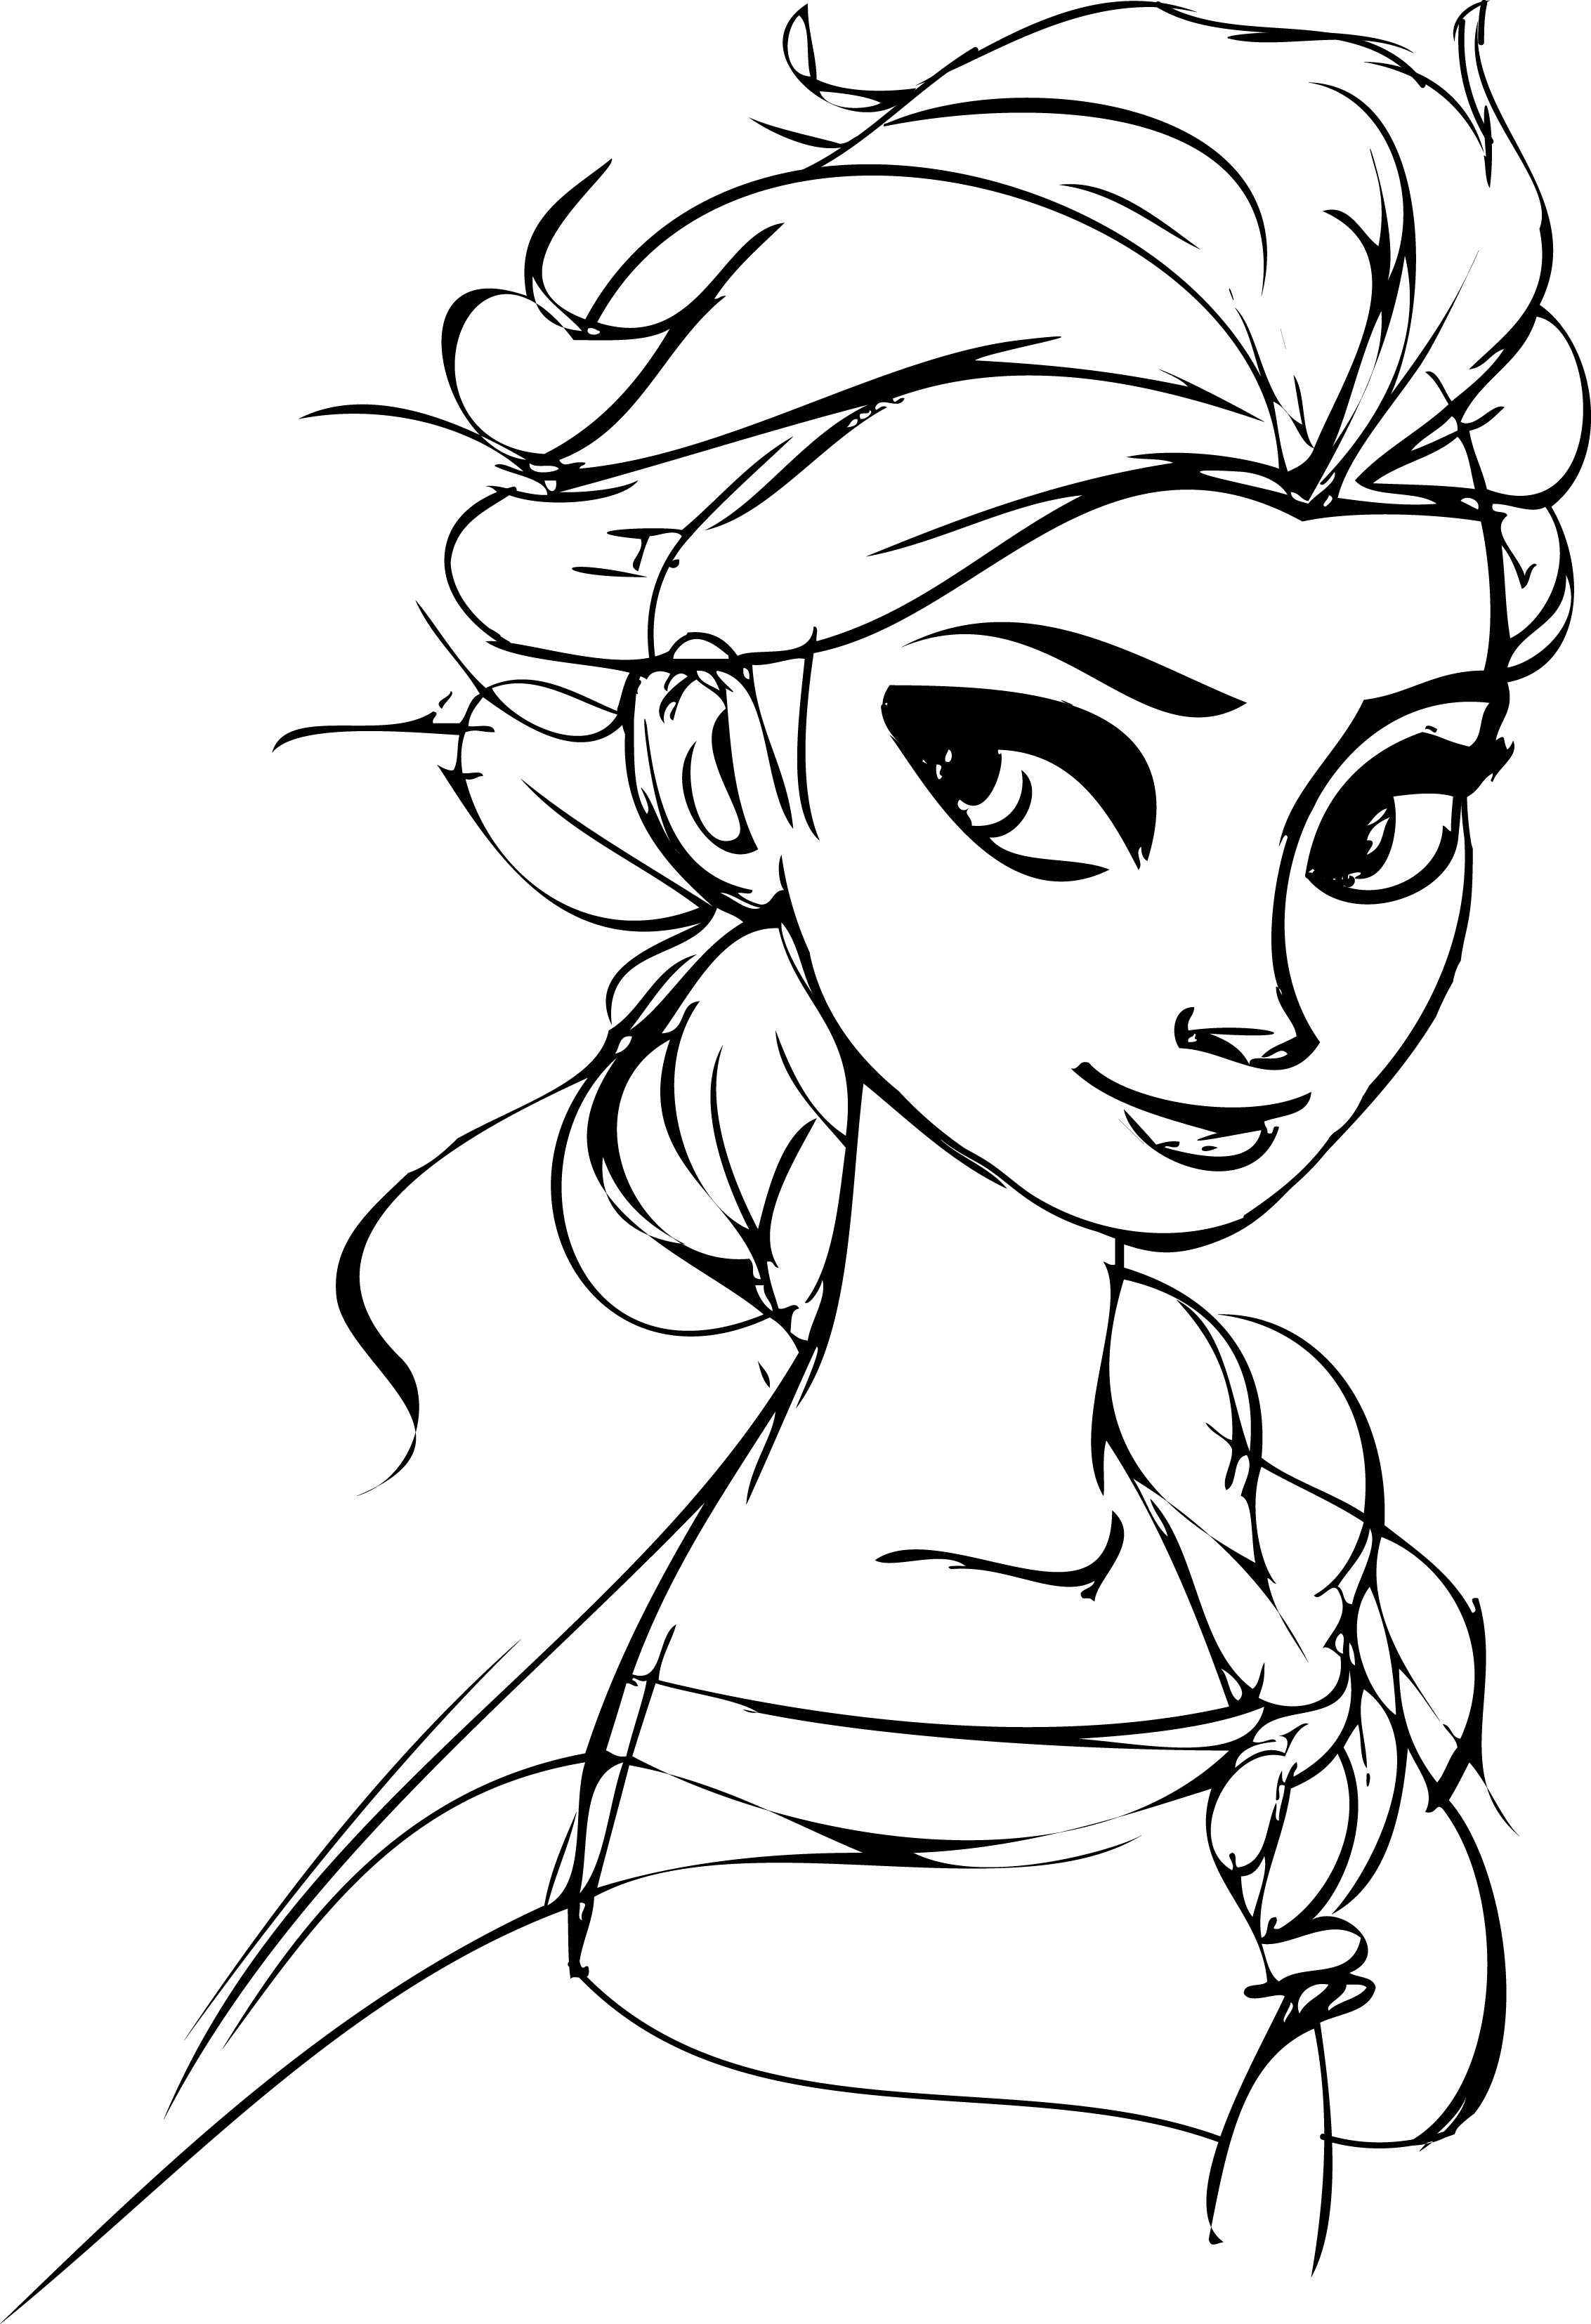 Colouring In Pages Elsa : Elsa para colorear ?DIBUJOS para descargar y Pintar?